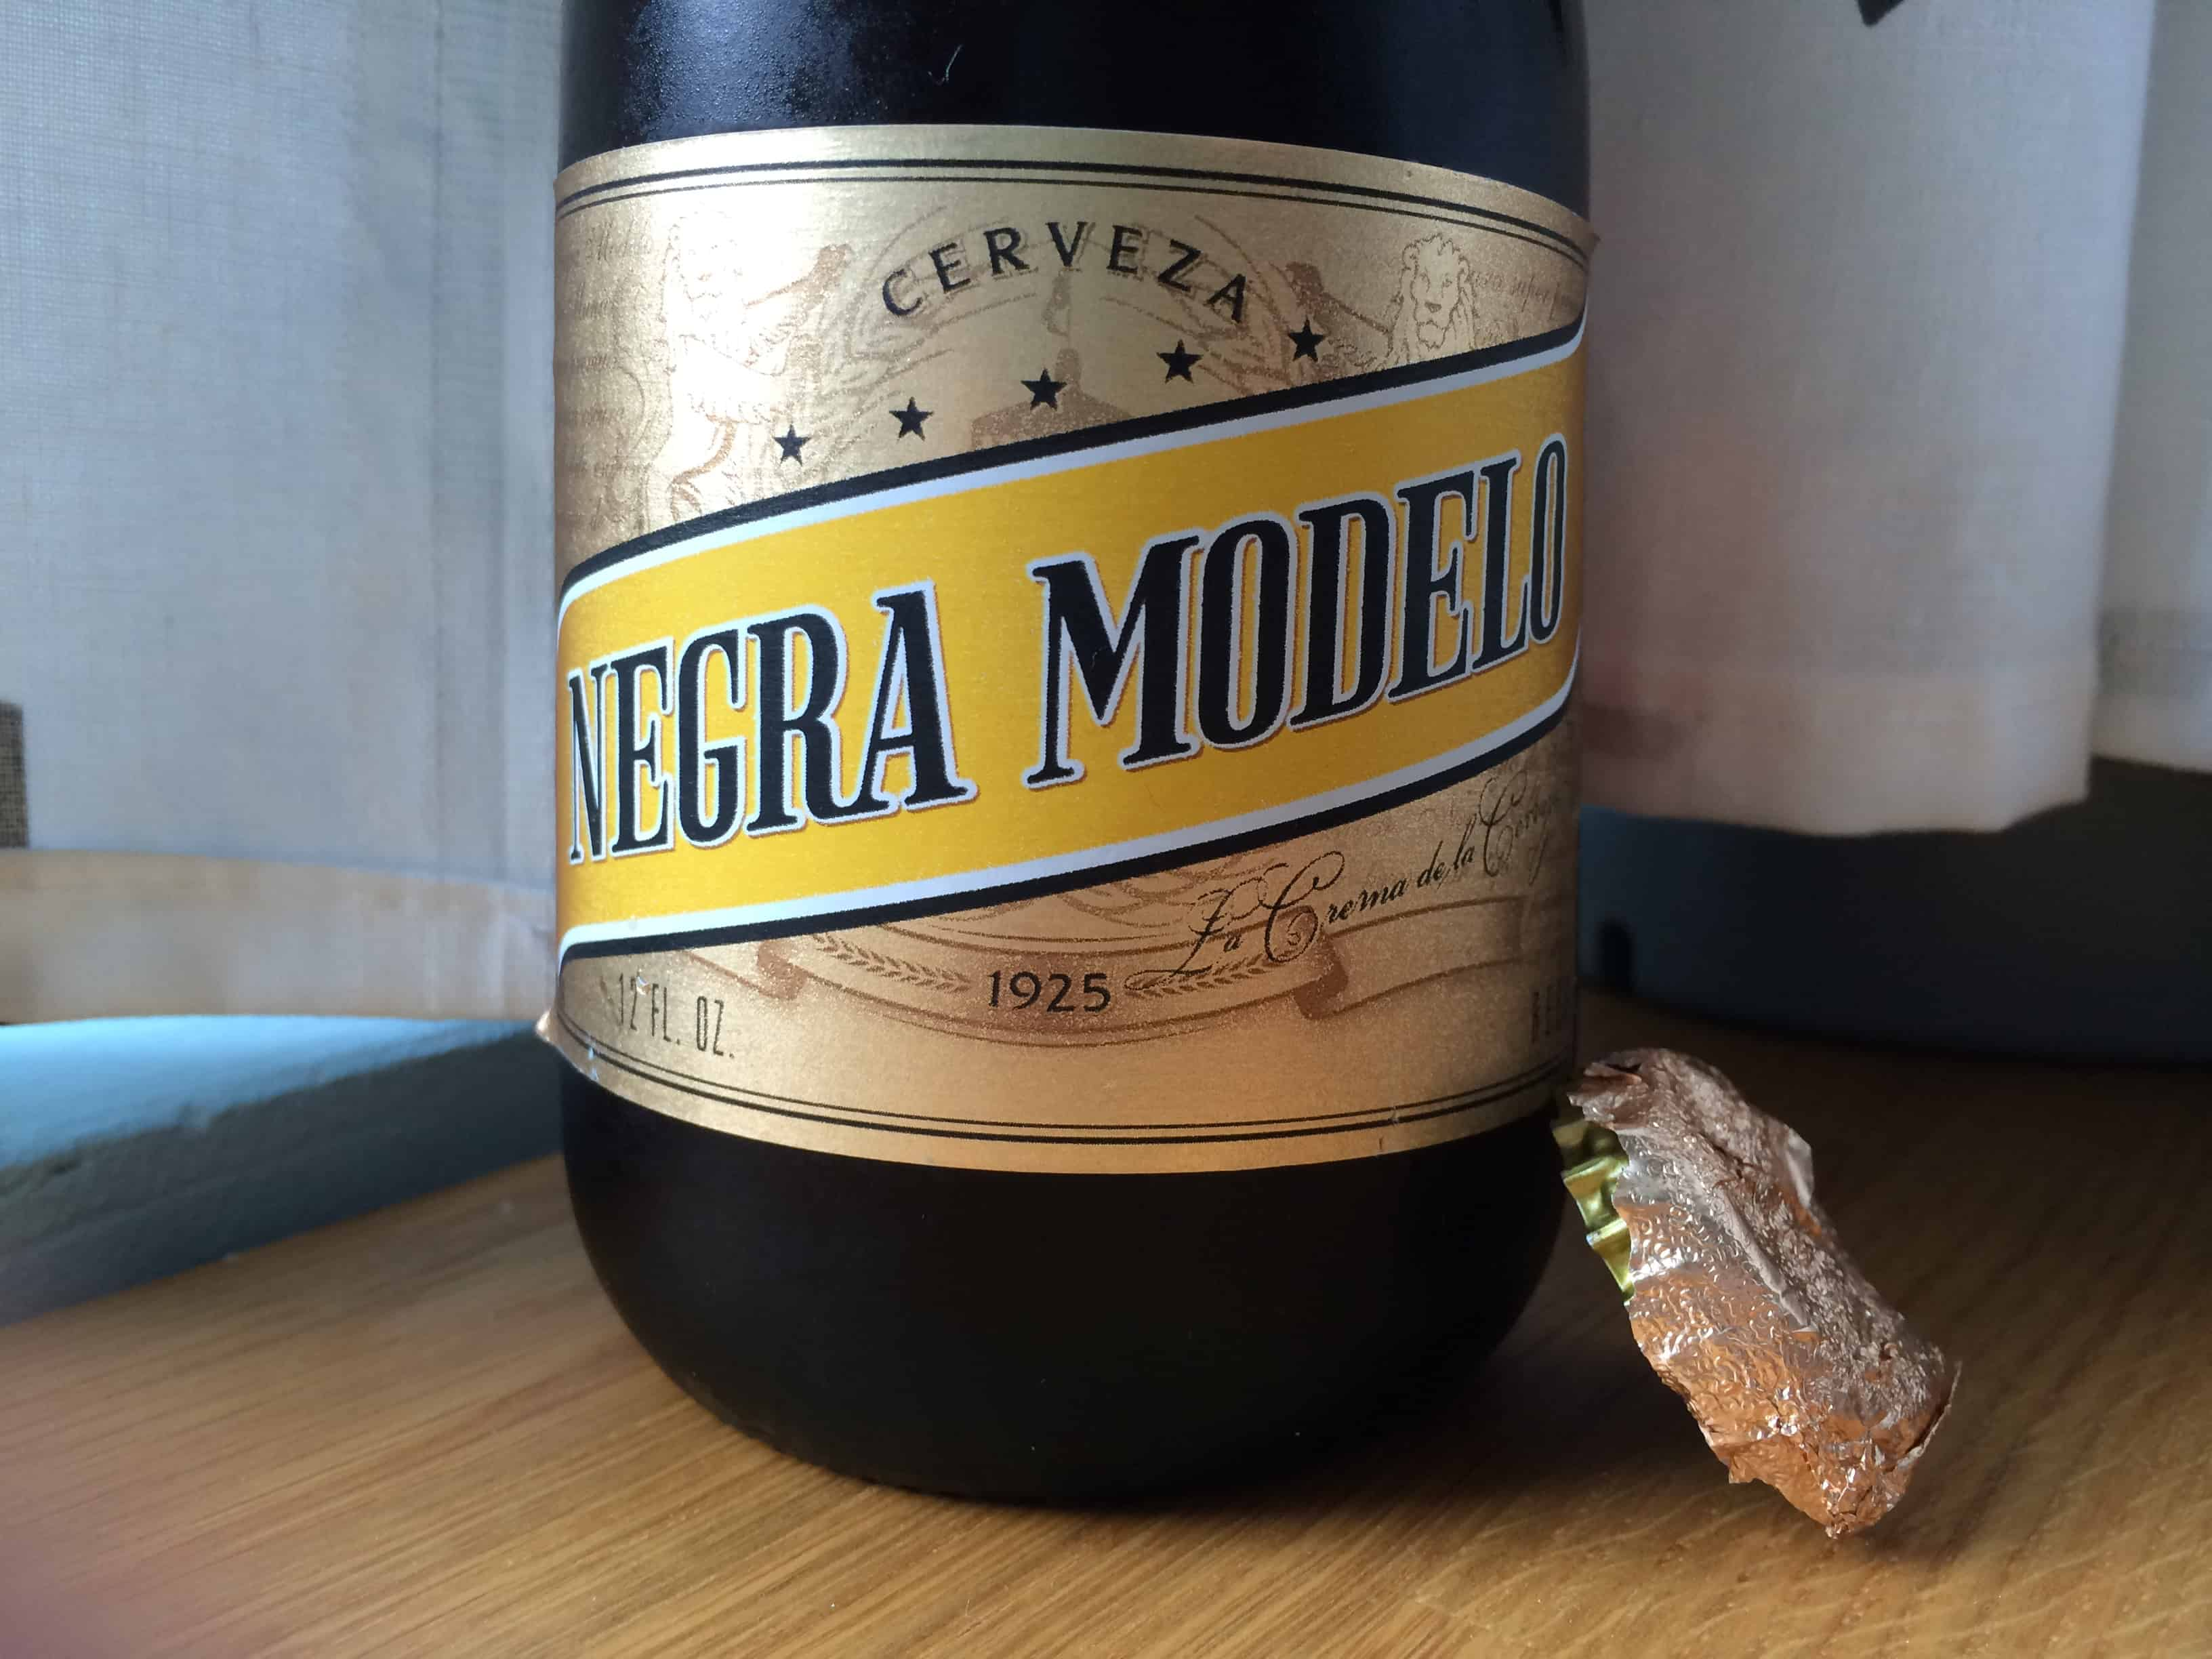 Photo of Negra Modelo, bere de sezlong